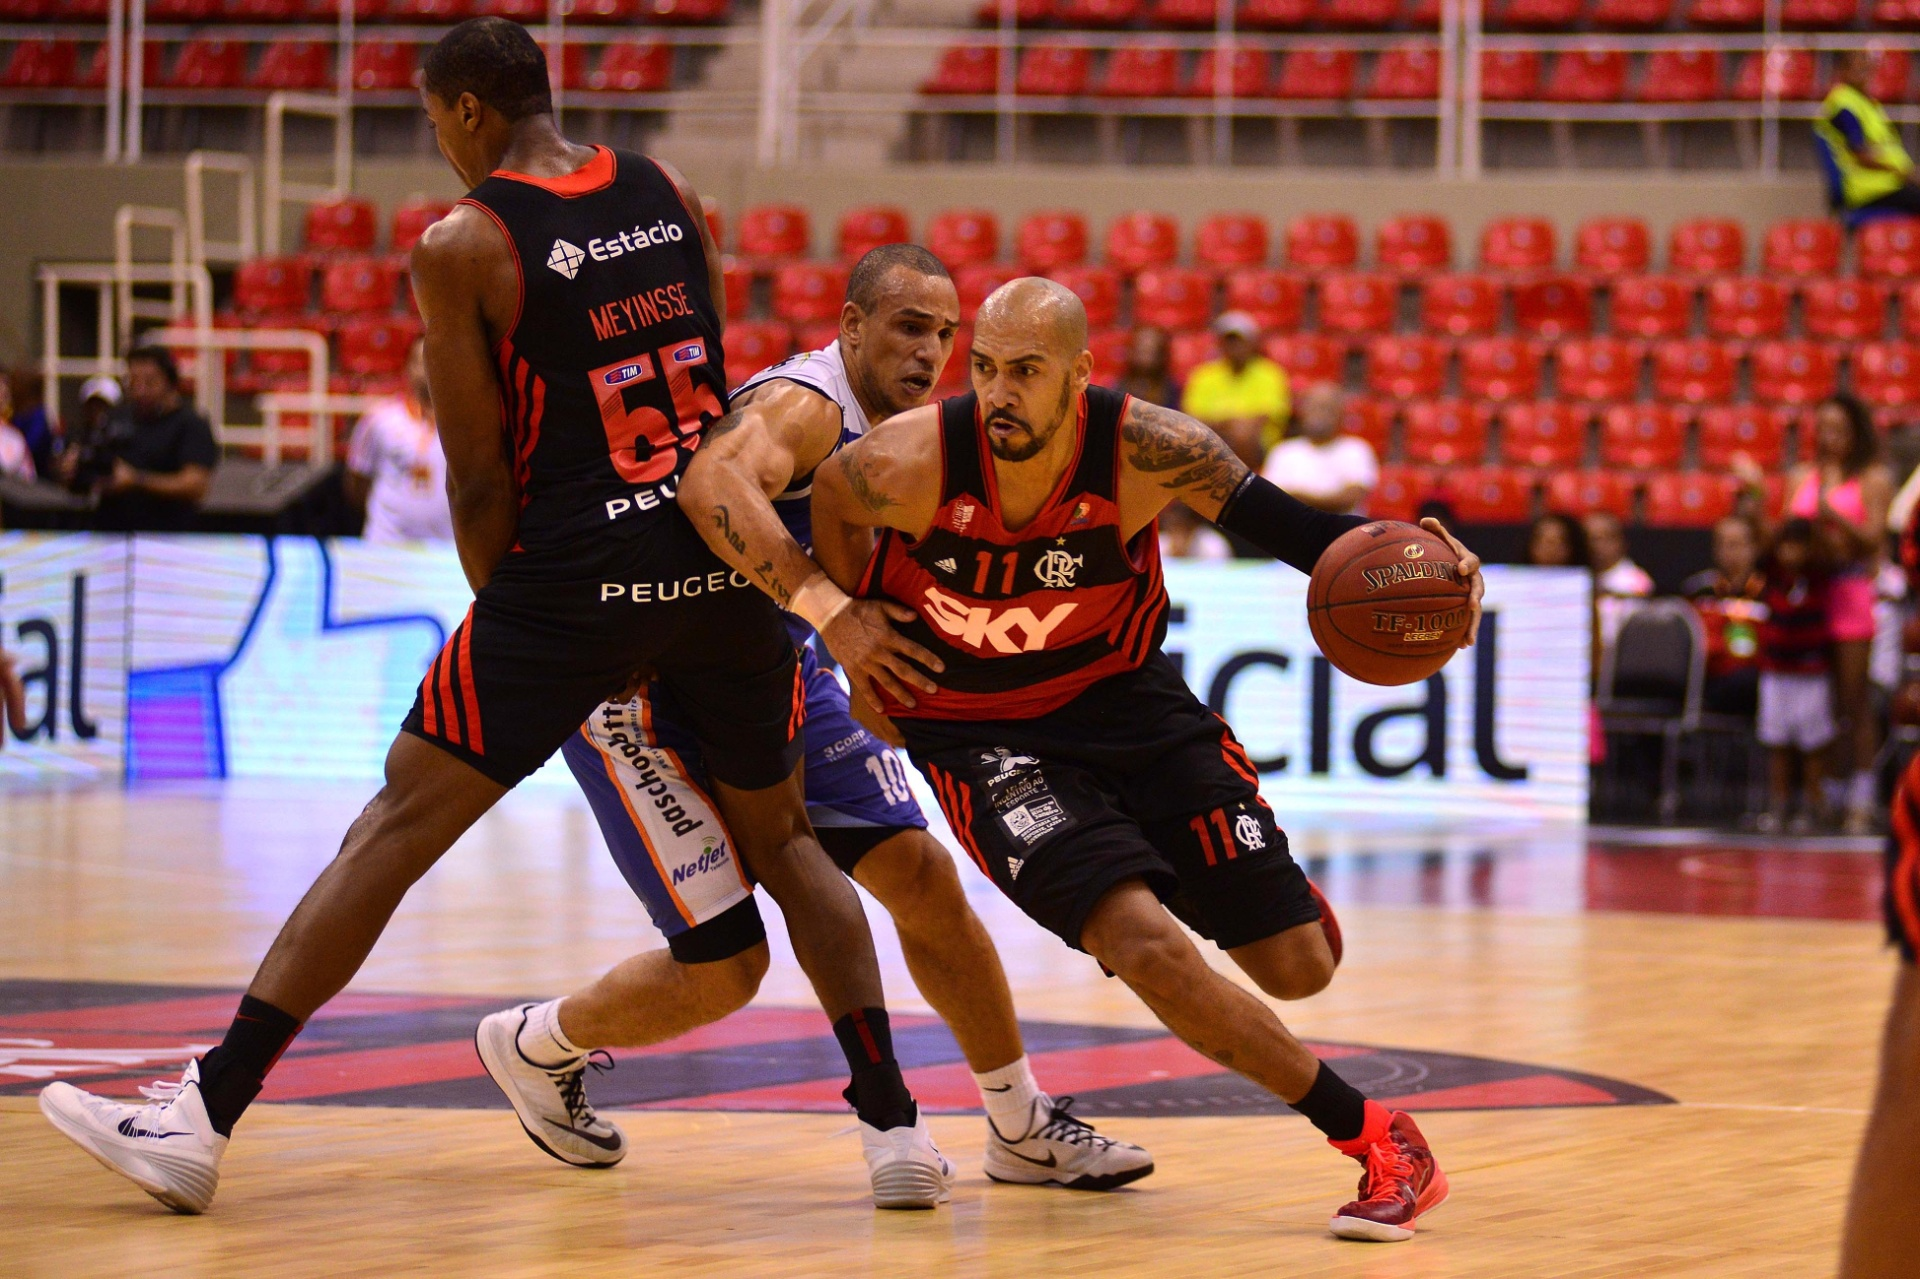 Na final do NBB, Marquinhos, do Flamengo, se desvencilha da marcação de Alex, do Bauru